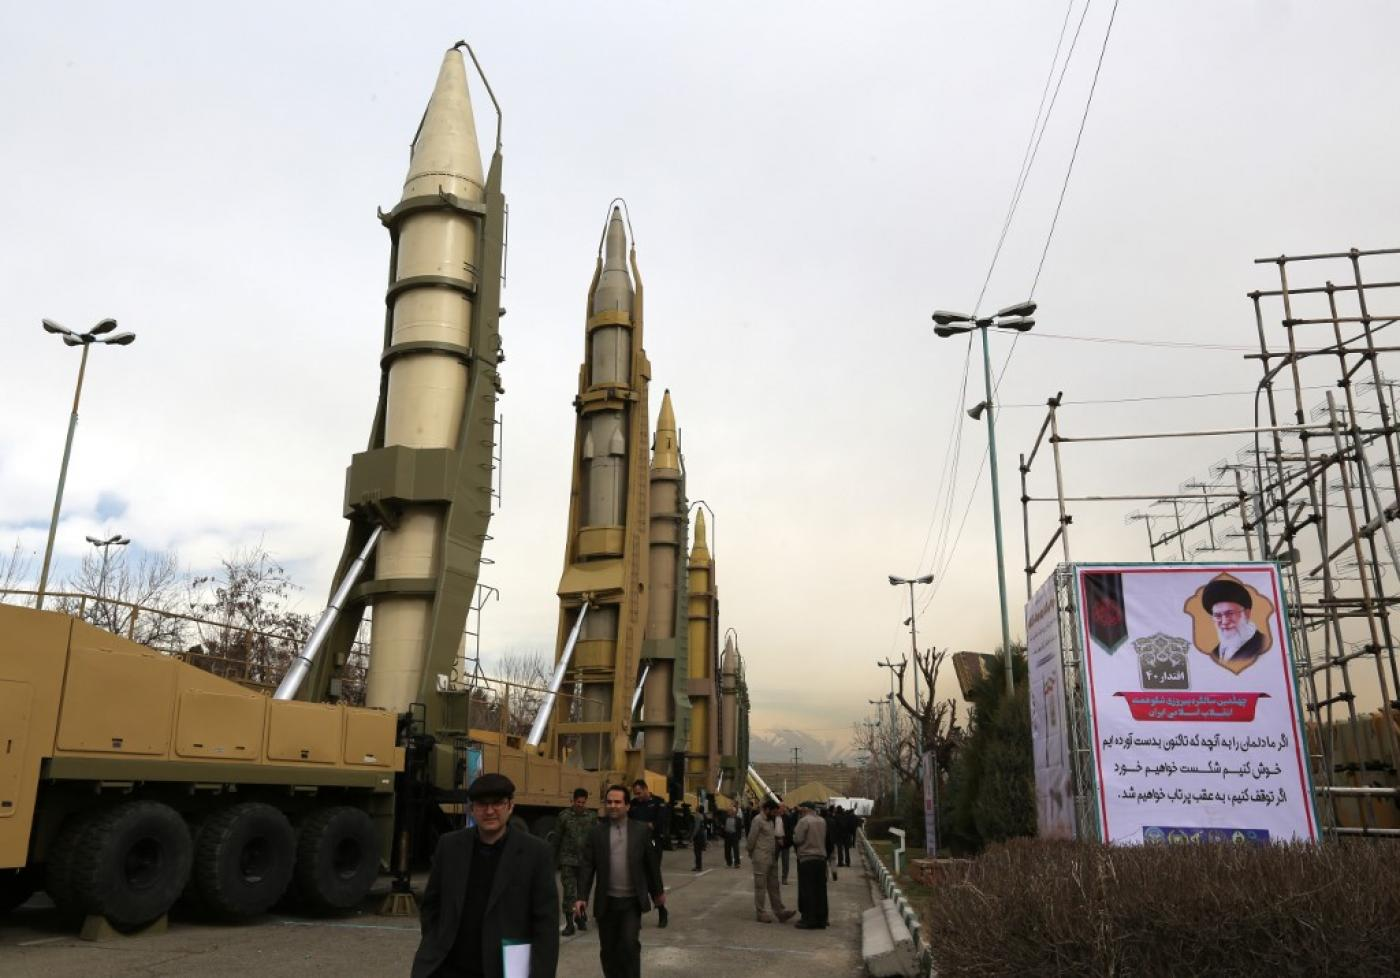 U.N weapons embargo on Iran lifts after 13 years